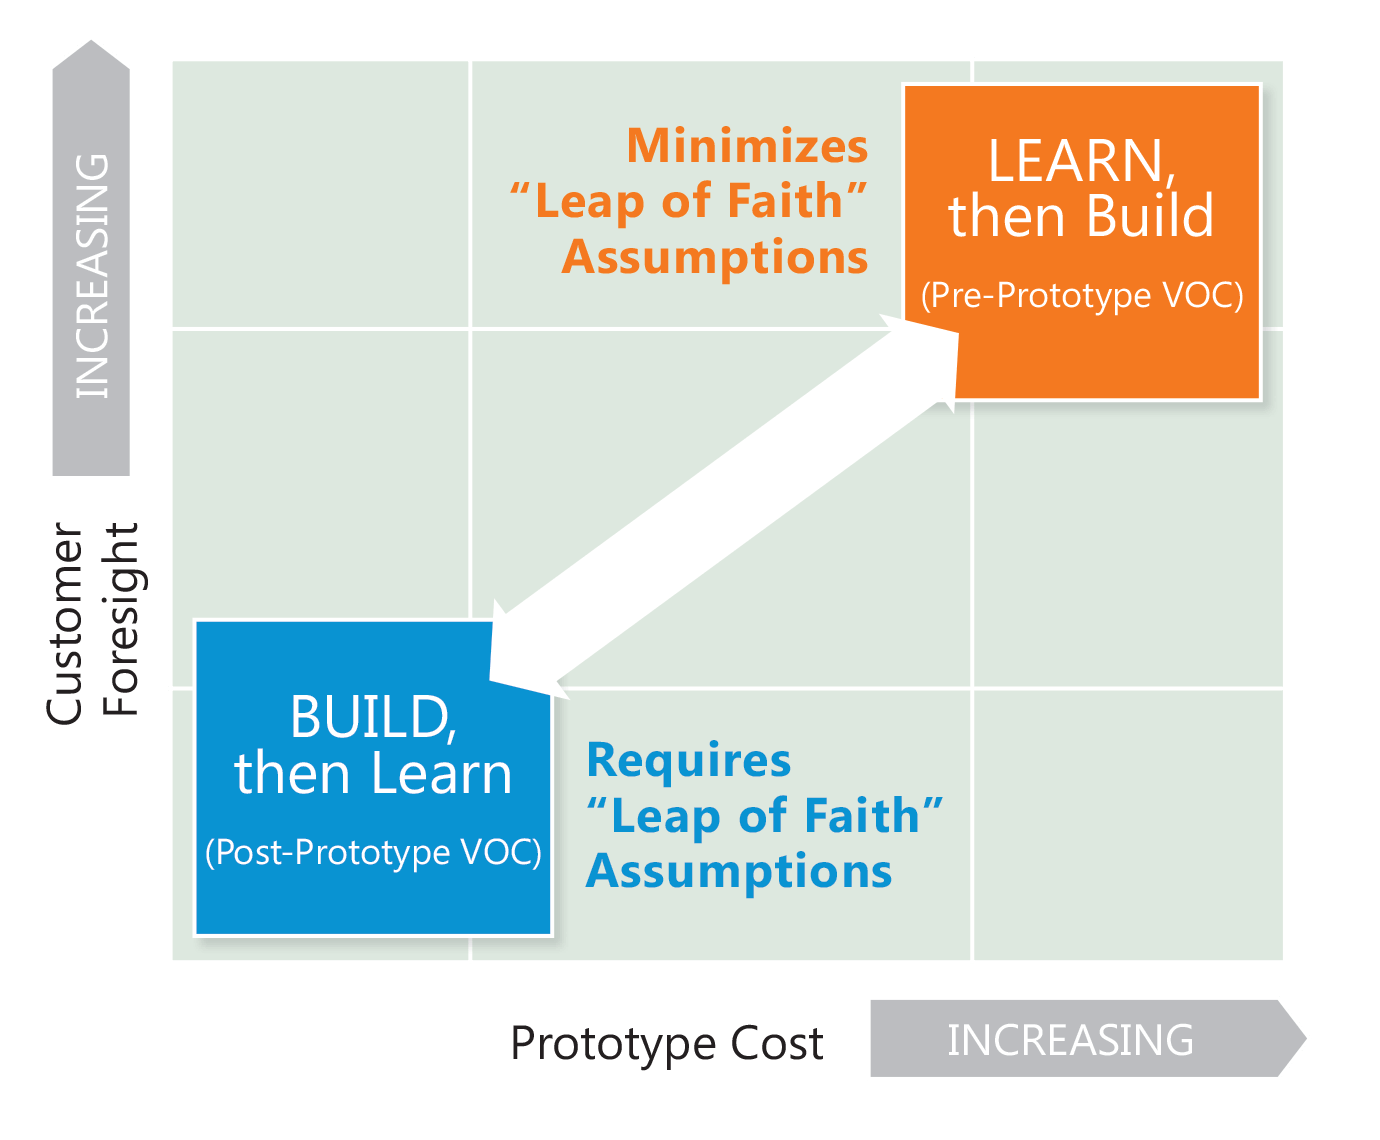 Lean Startup: A Great Approach Requiring B2B Pre-Work - AIM